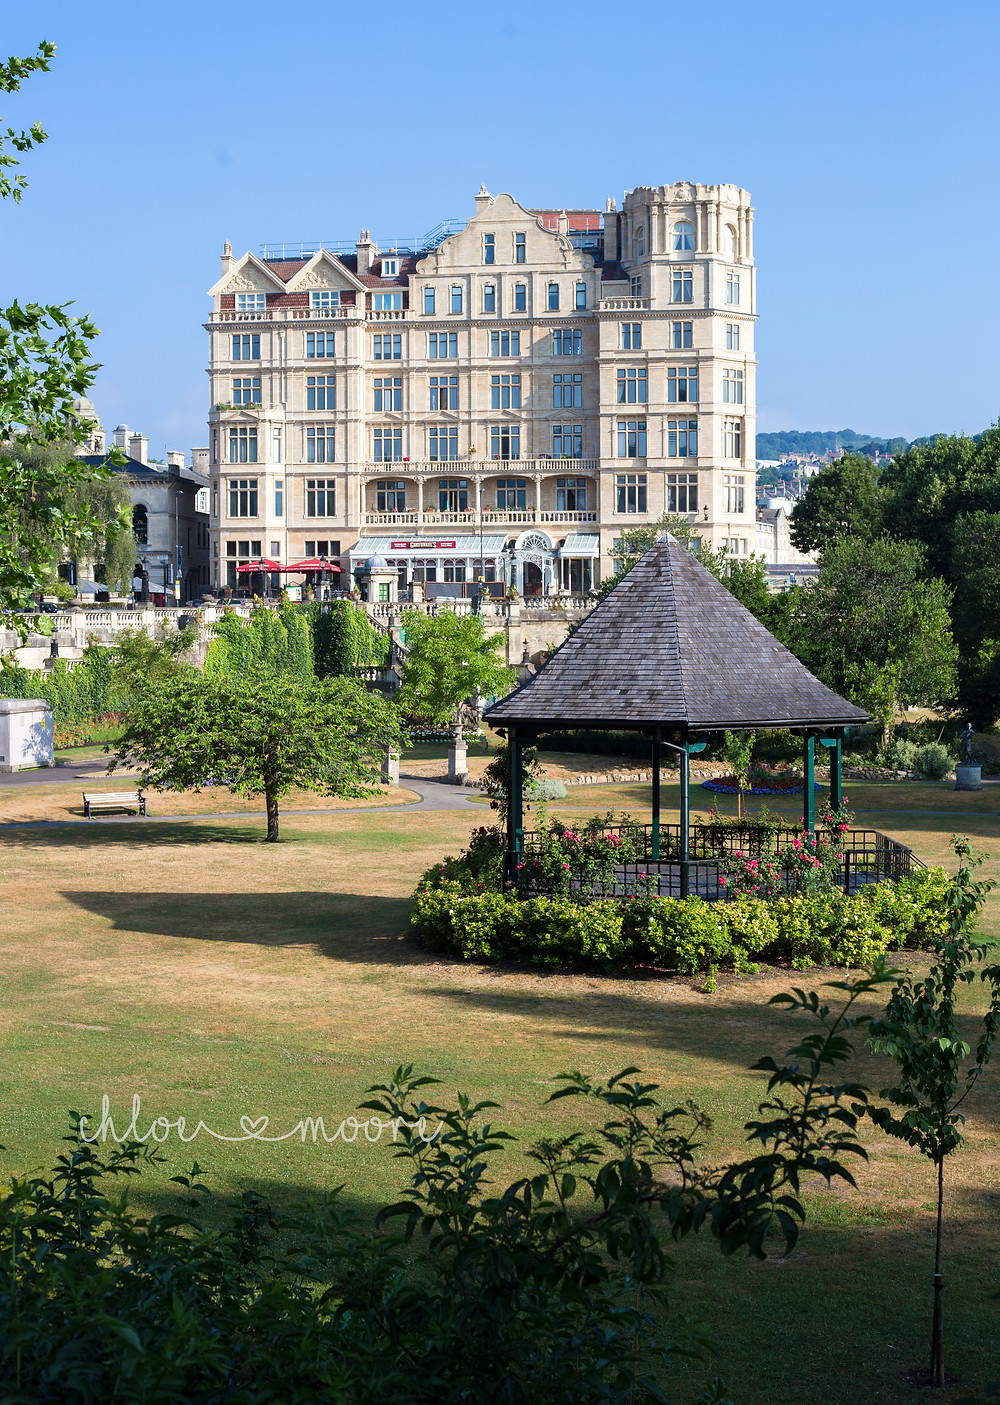 City of Bath, England. Parade Gardens. Activities for children, summer holidays